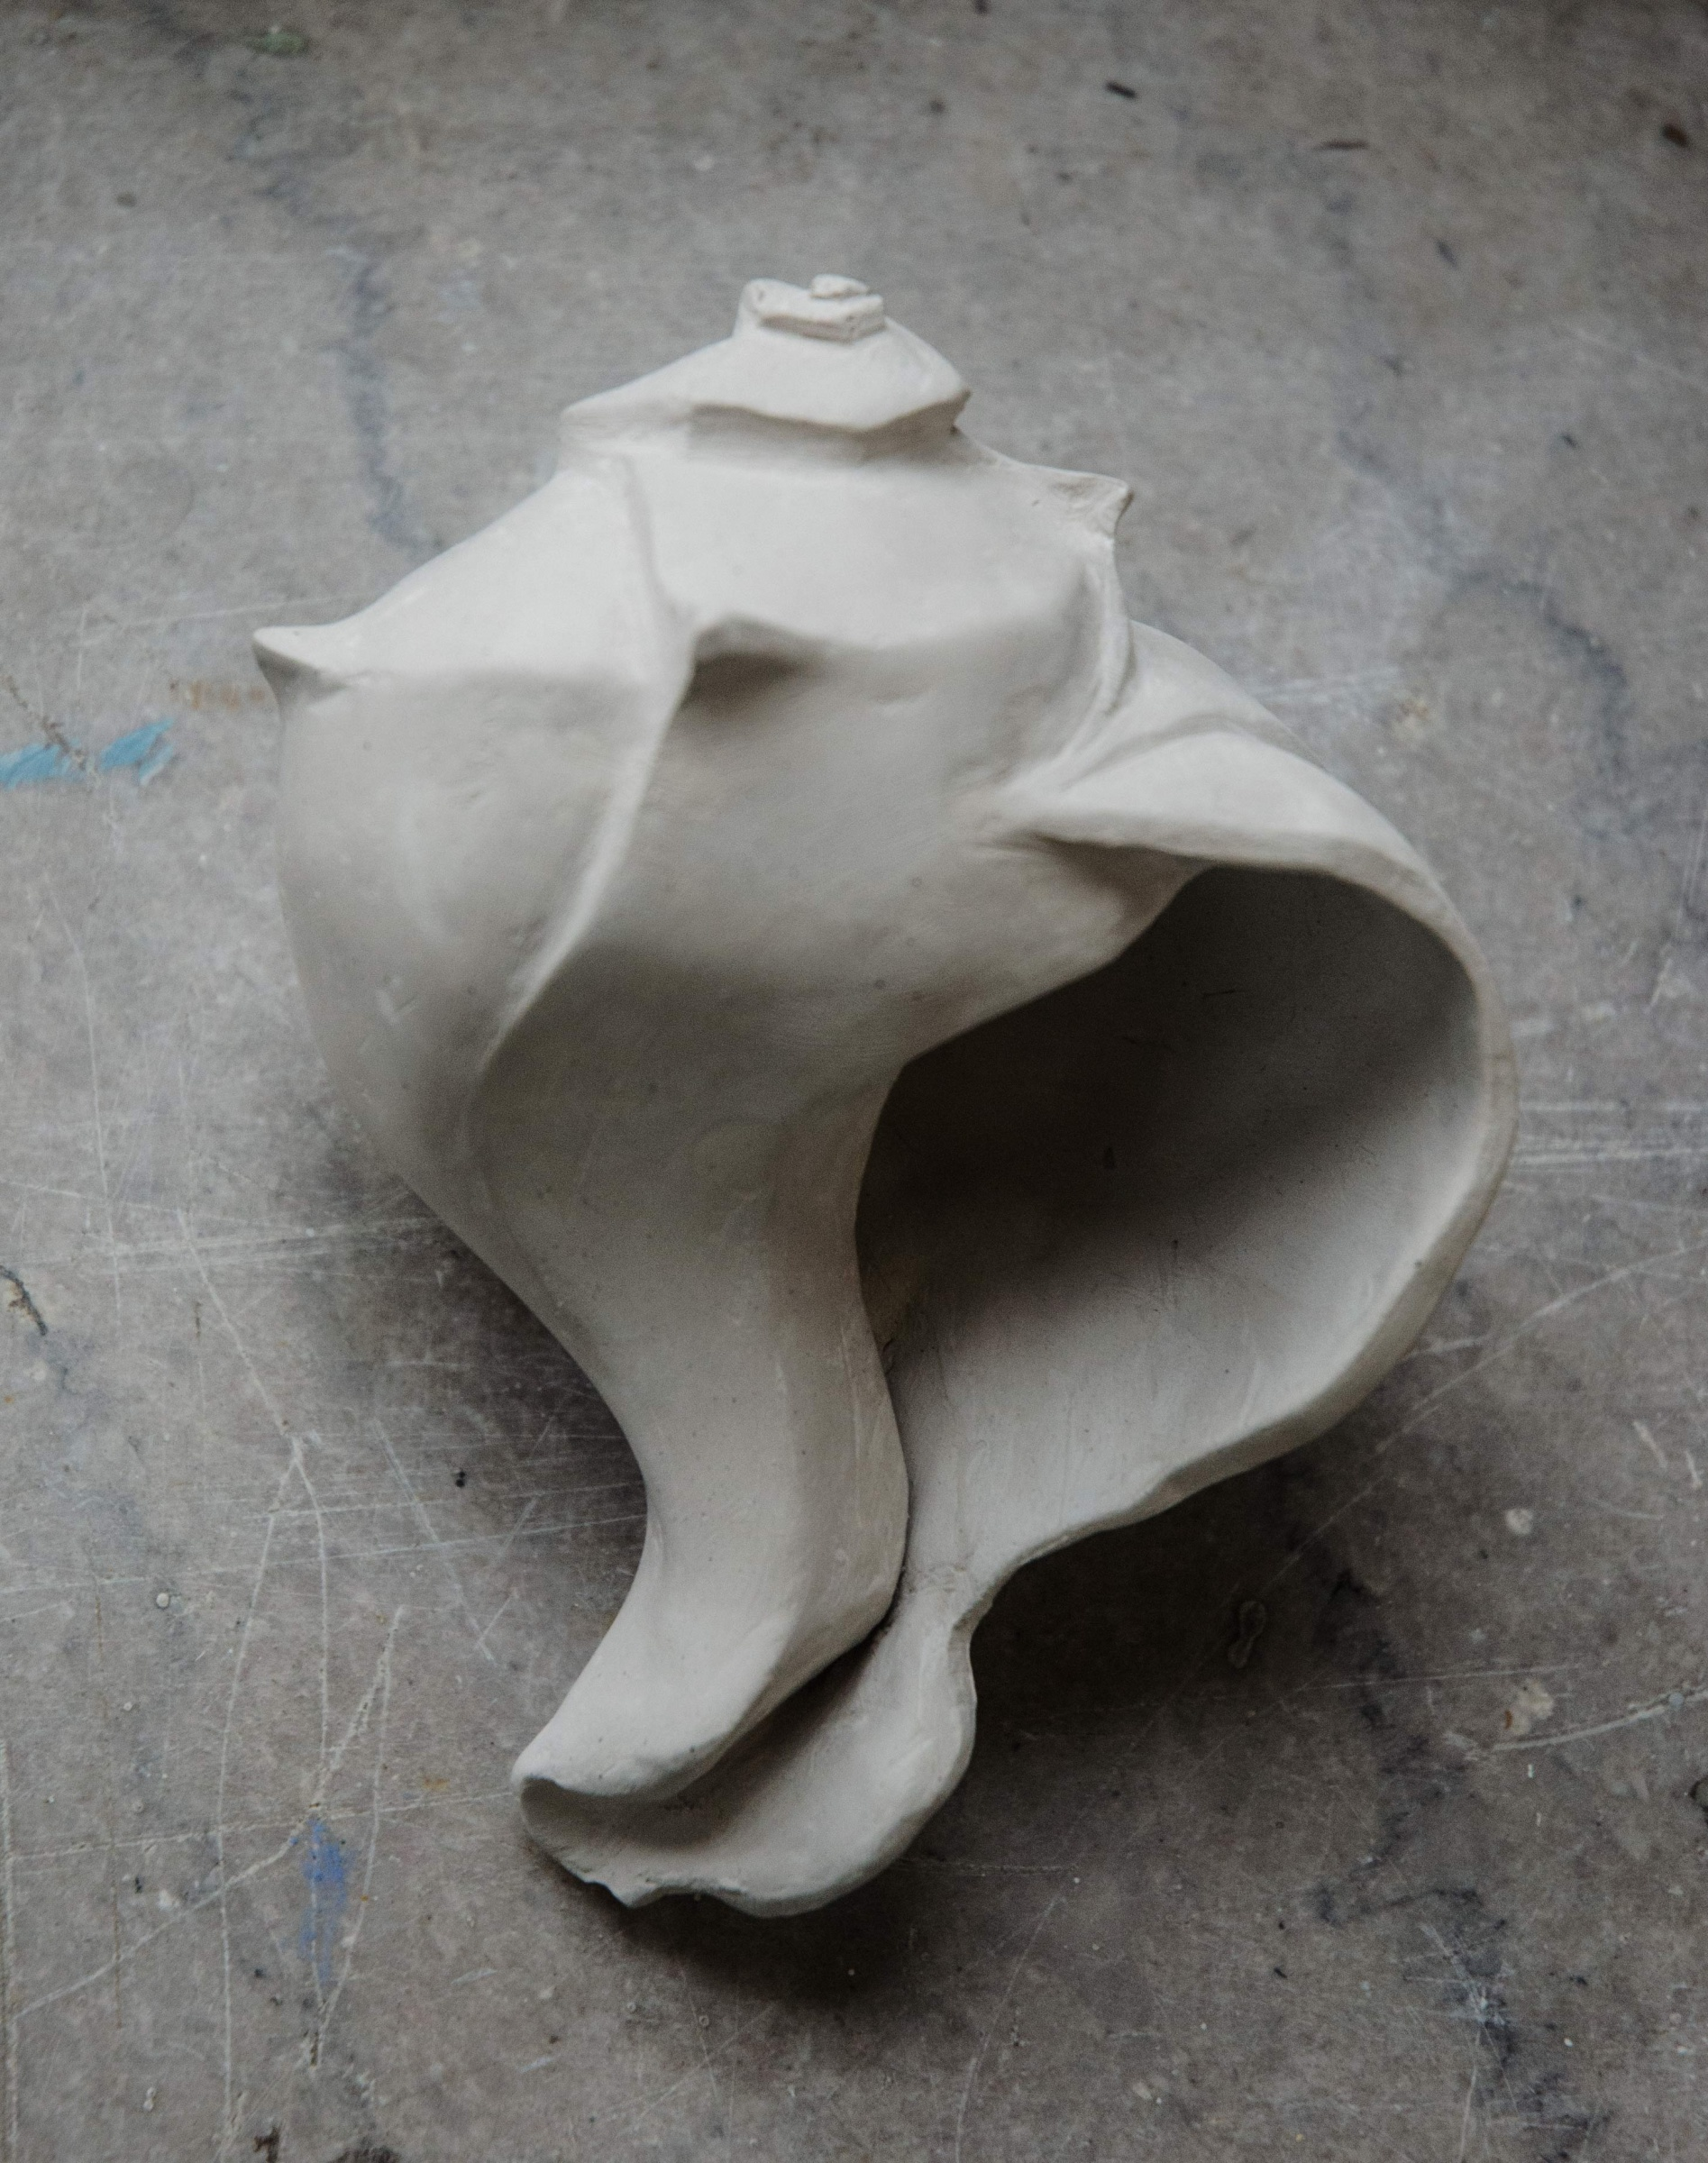 Clay conch shell